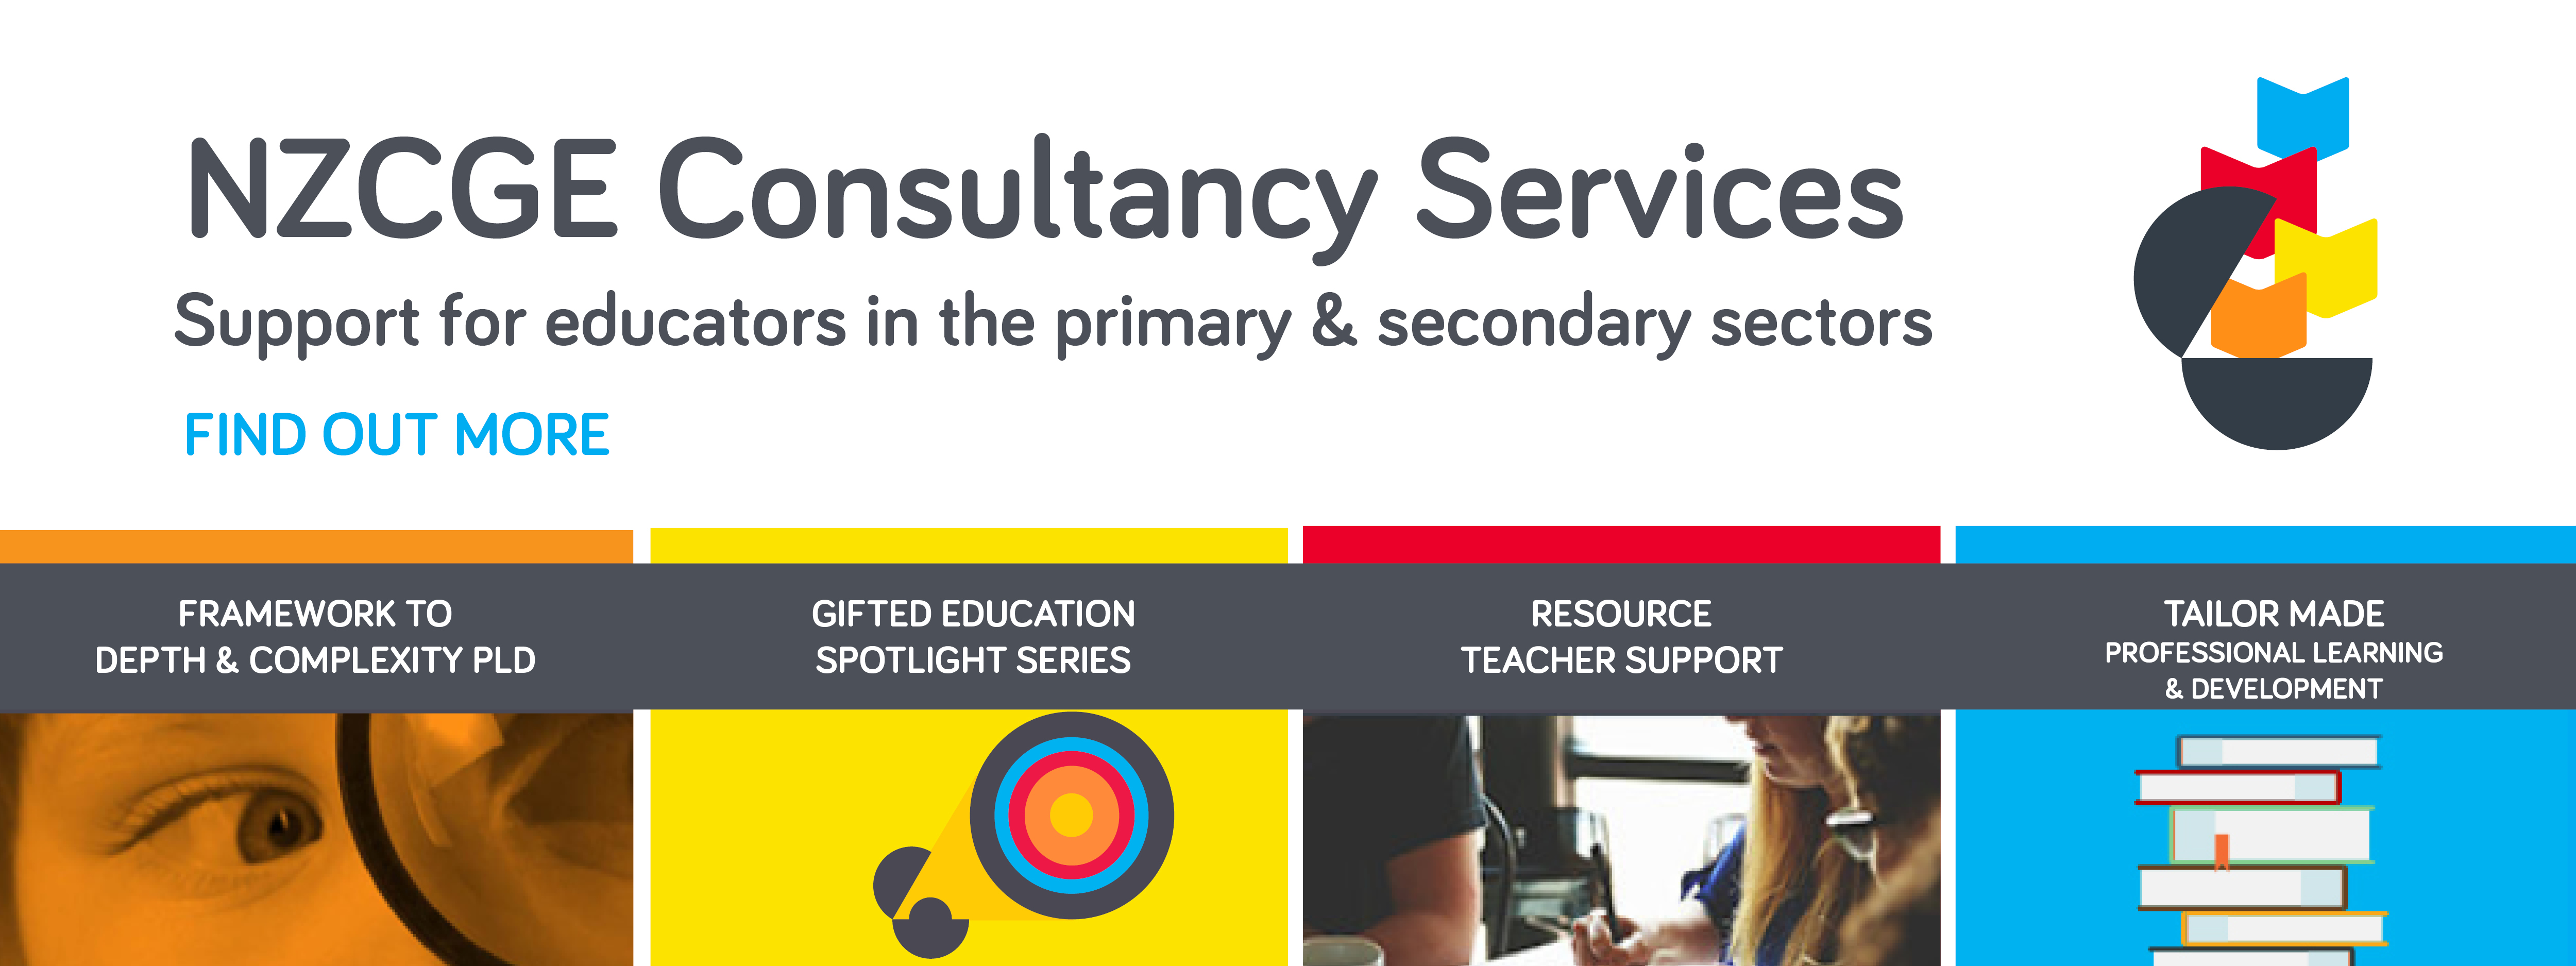 Consultancy Services 2020